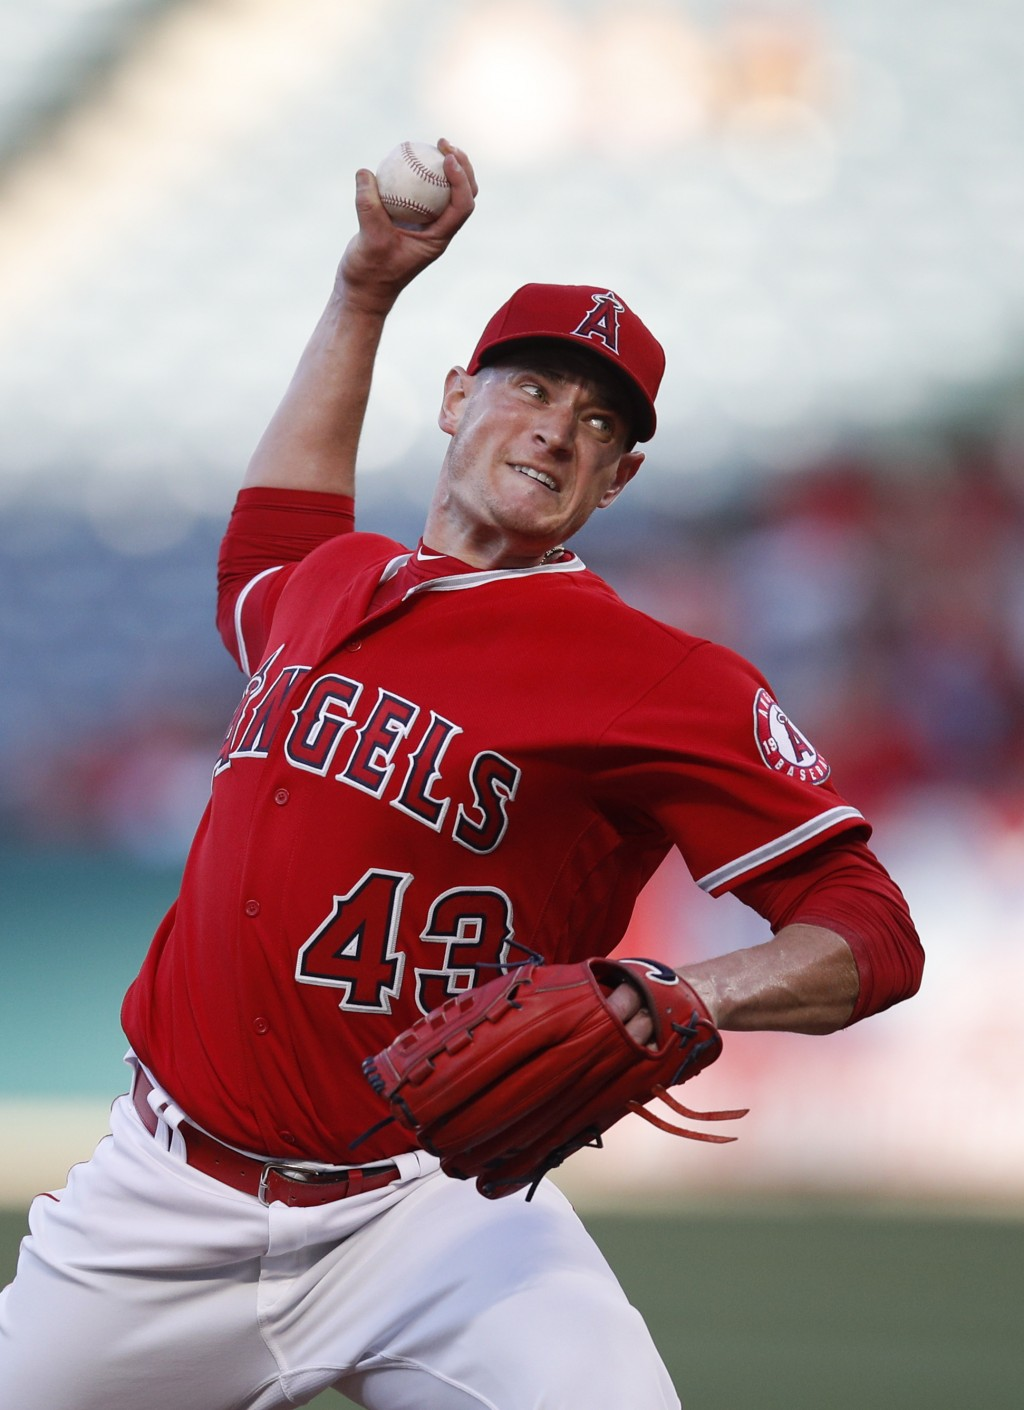 Los Angeles Angels starting pitcher Garrett Richards throws to a Houston Astros batter during the first inning of a baseball game Wednesday, May 16, 2